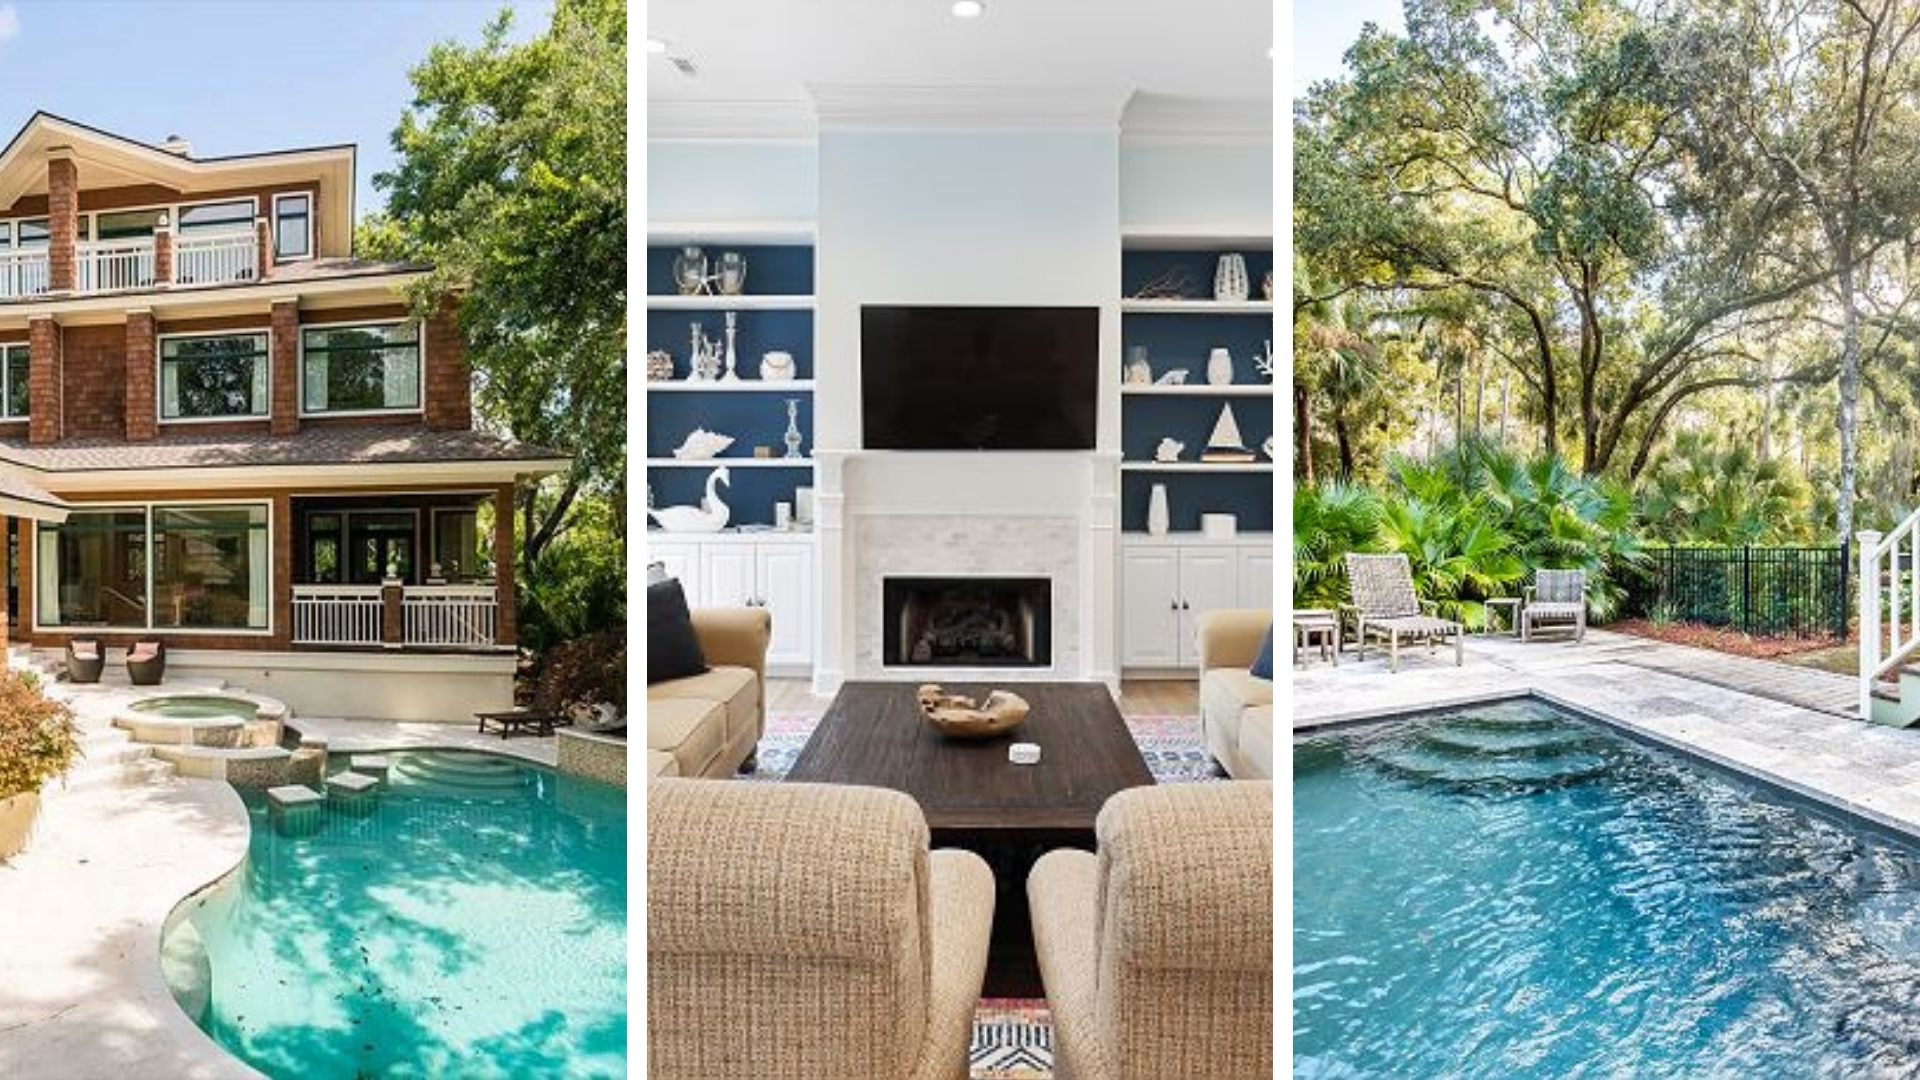 Places to Stay on Kiawah - Near Johns Island